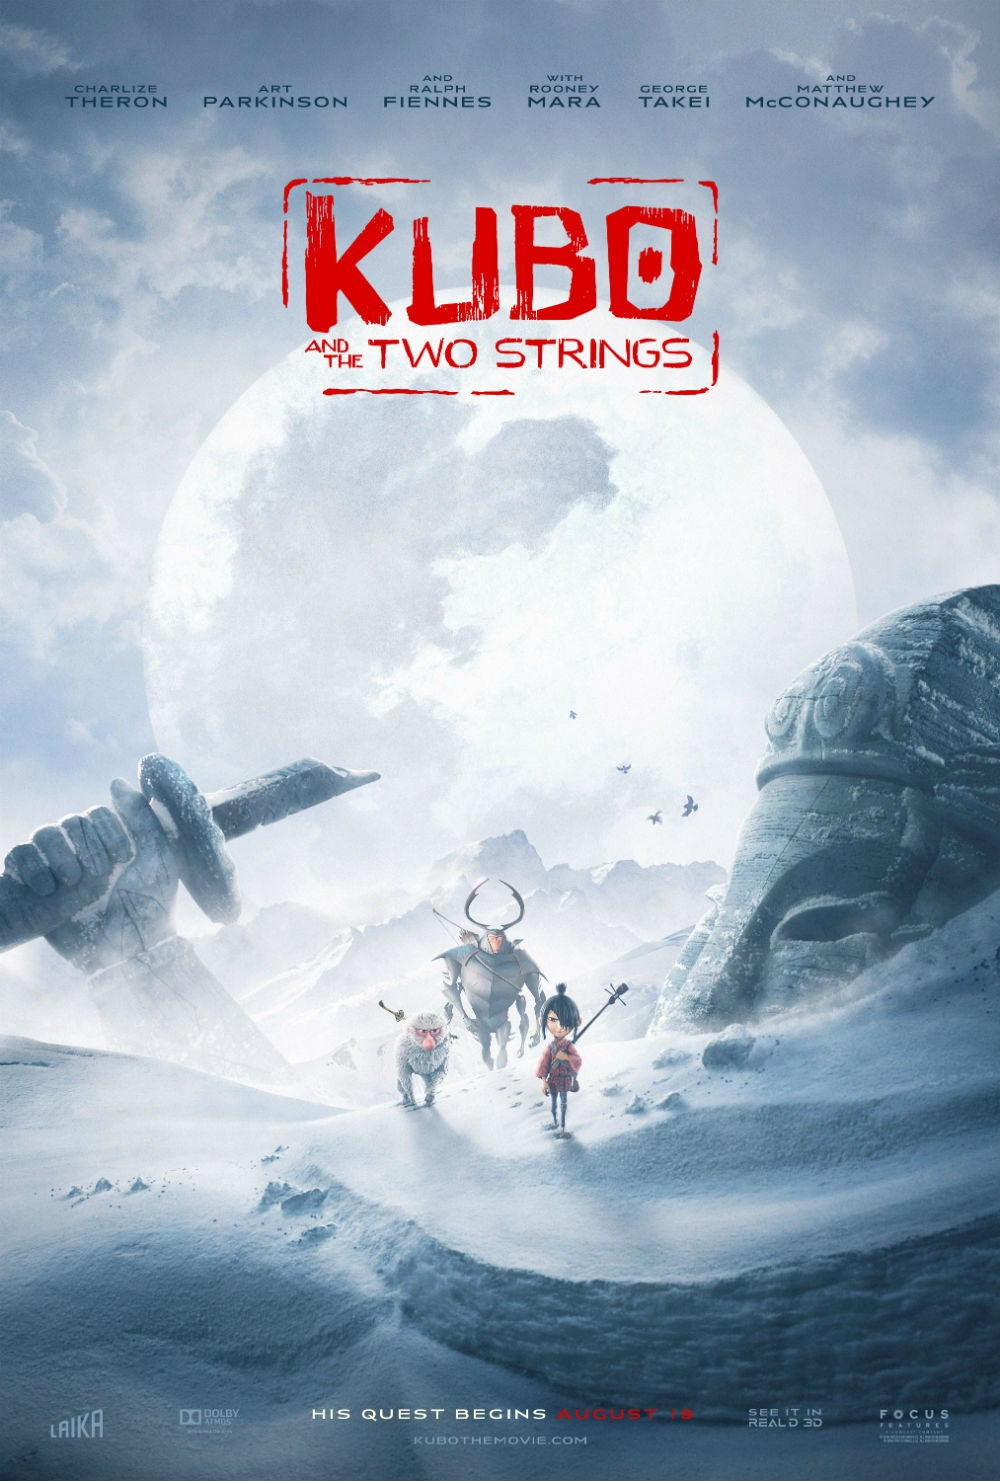 The Adventure Is Bigger Than Ever in the Last Kubo and the Two Strings Trailer